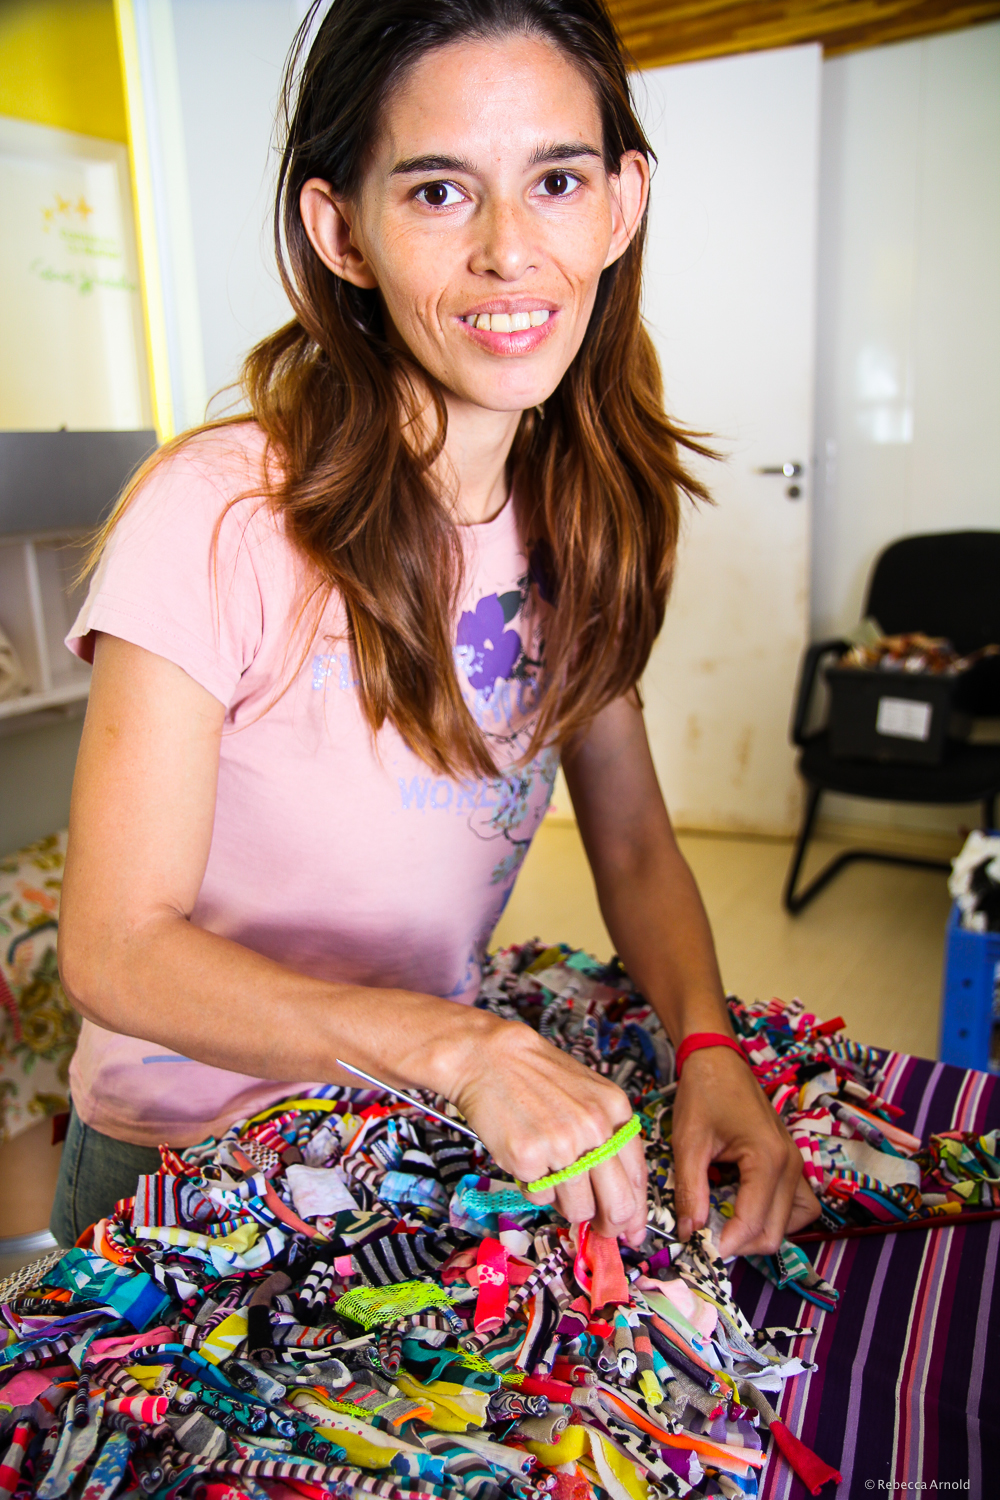 Sorocaba, Brazil.  Lua Nova,  New Moon, a  Women in the World  partner, rehabilitates drug-addicted teen mothers.         Making handbags to sell and fund the organization, and learn new skills for a stable life.